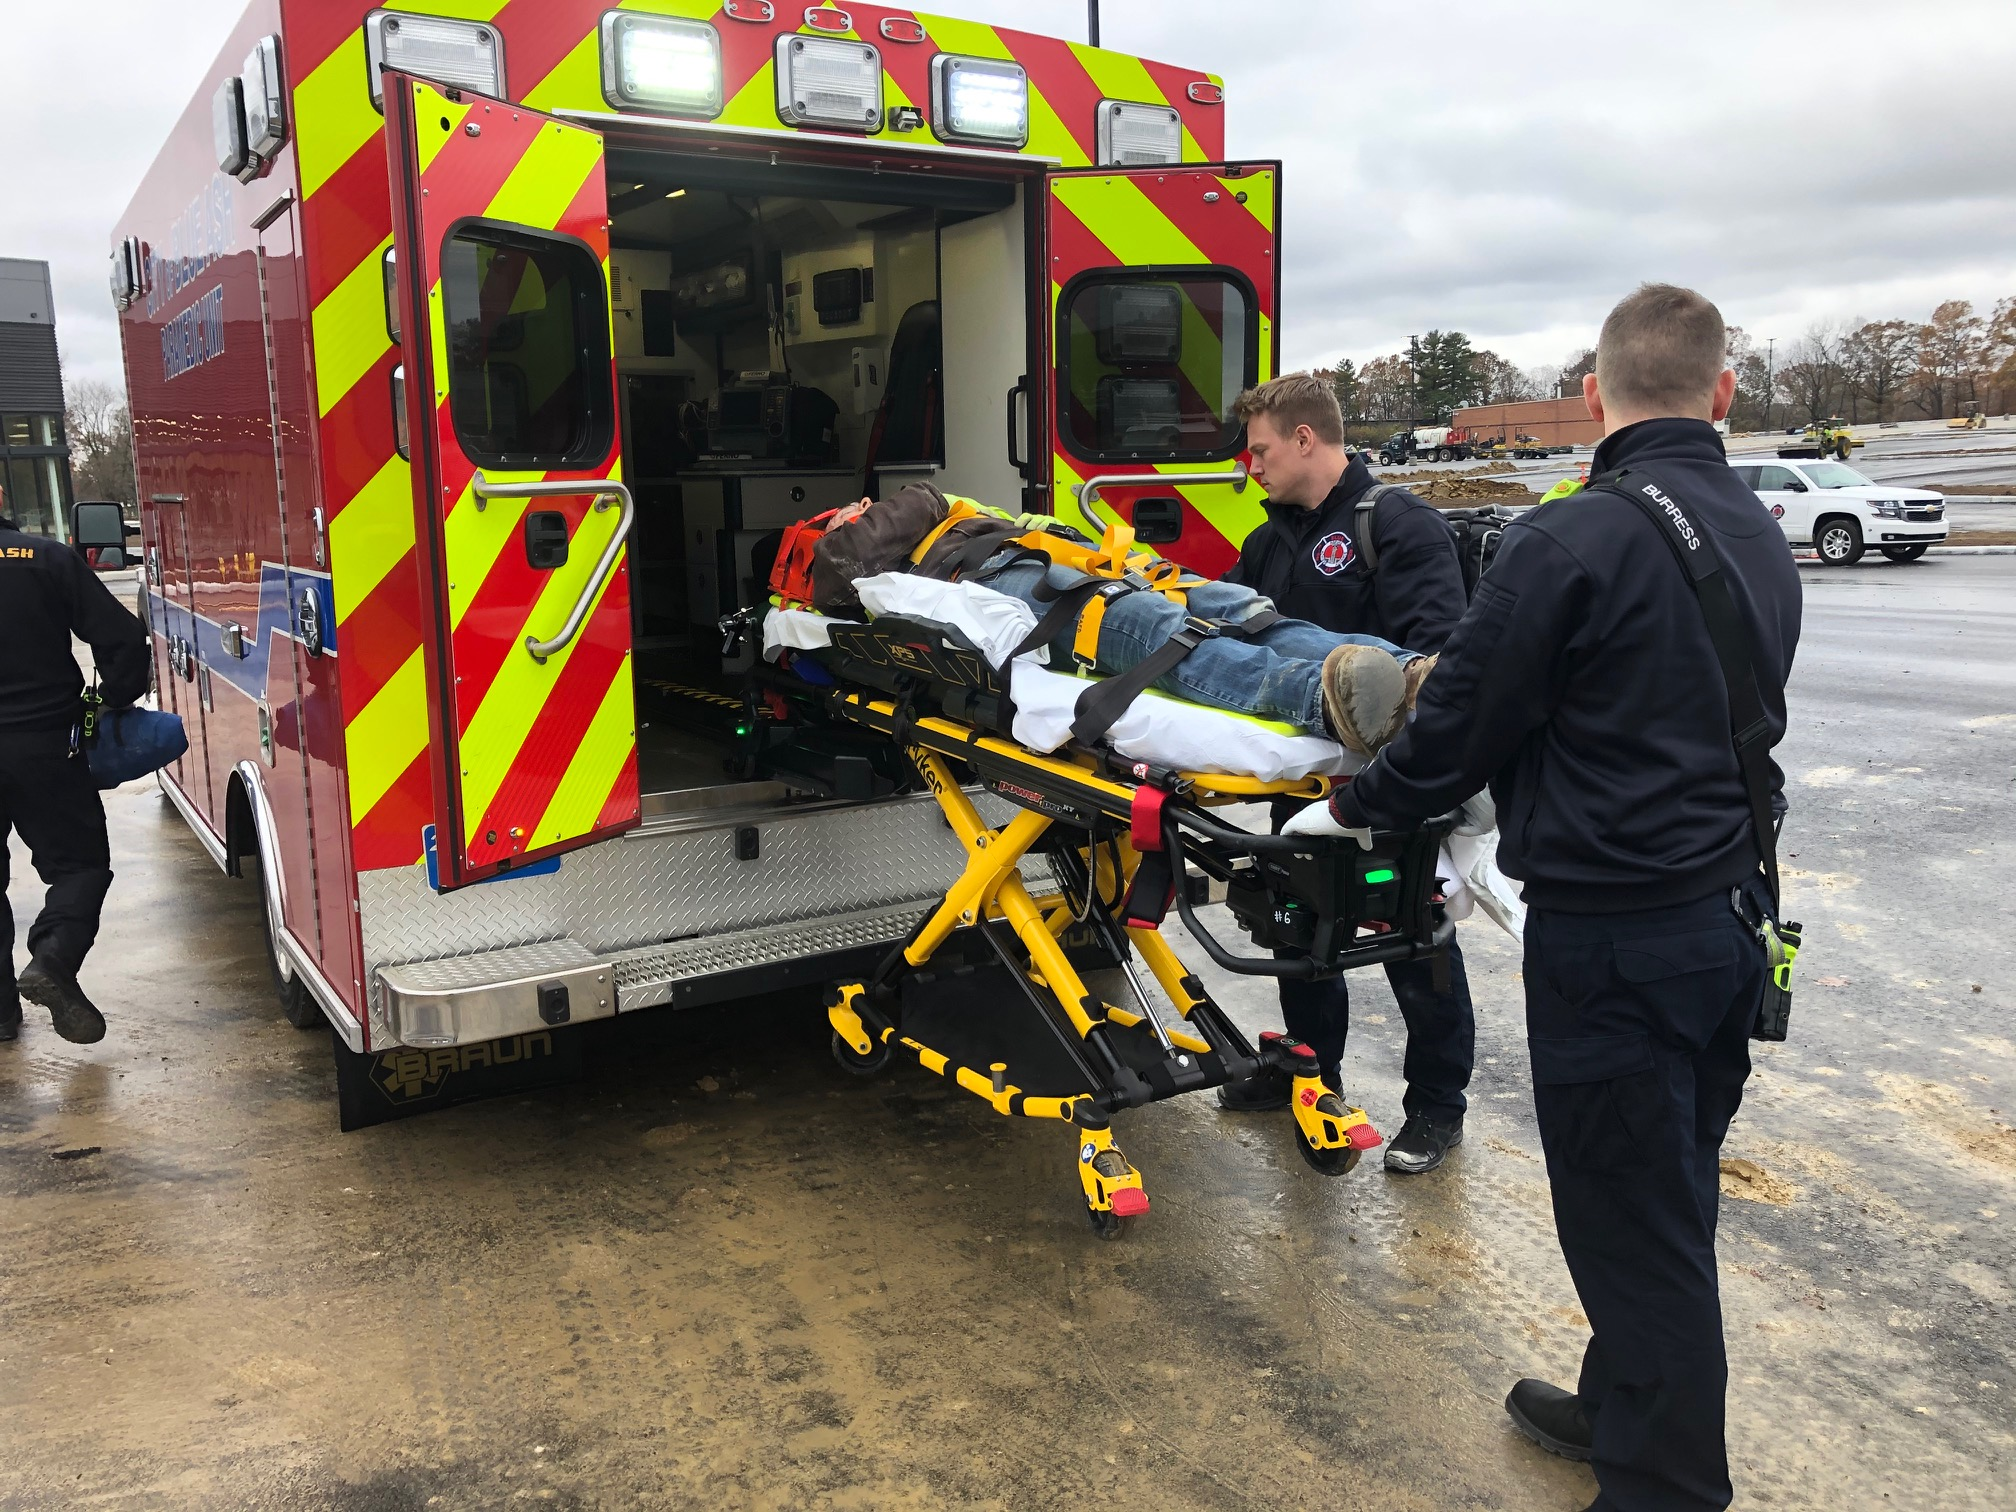 firefighters guide patient into ambulance during mock disaster drill